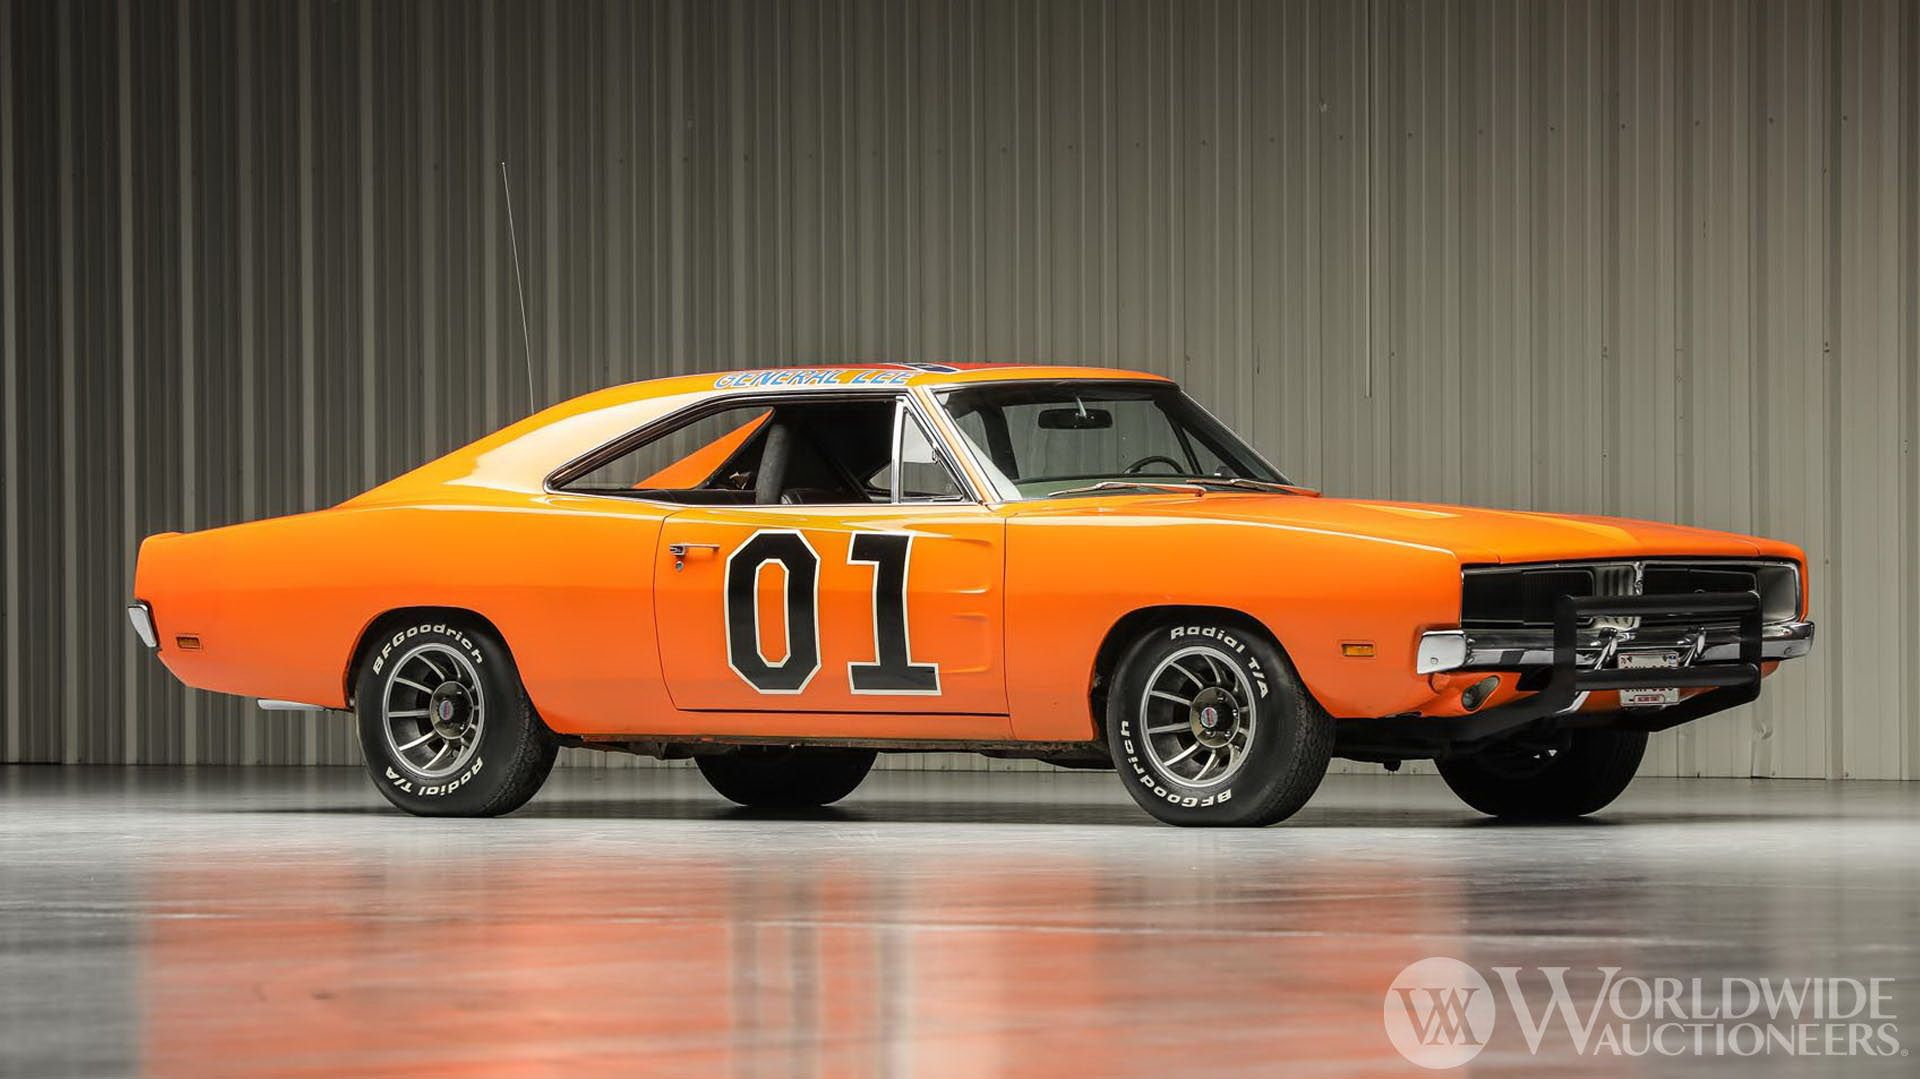 Dodge-Charger-General-Lee-Dukes-Of-Hazzard-auction-1